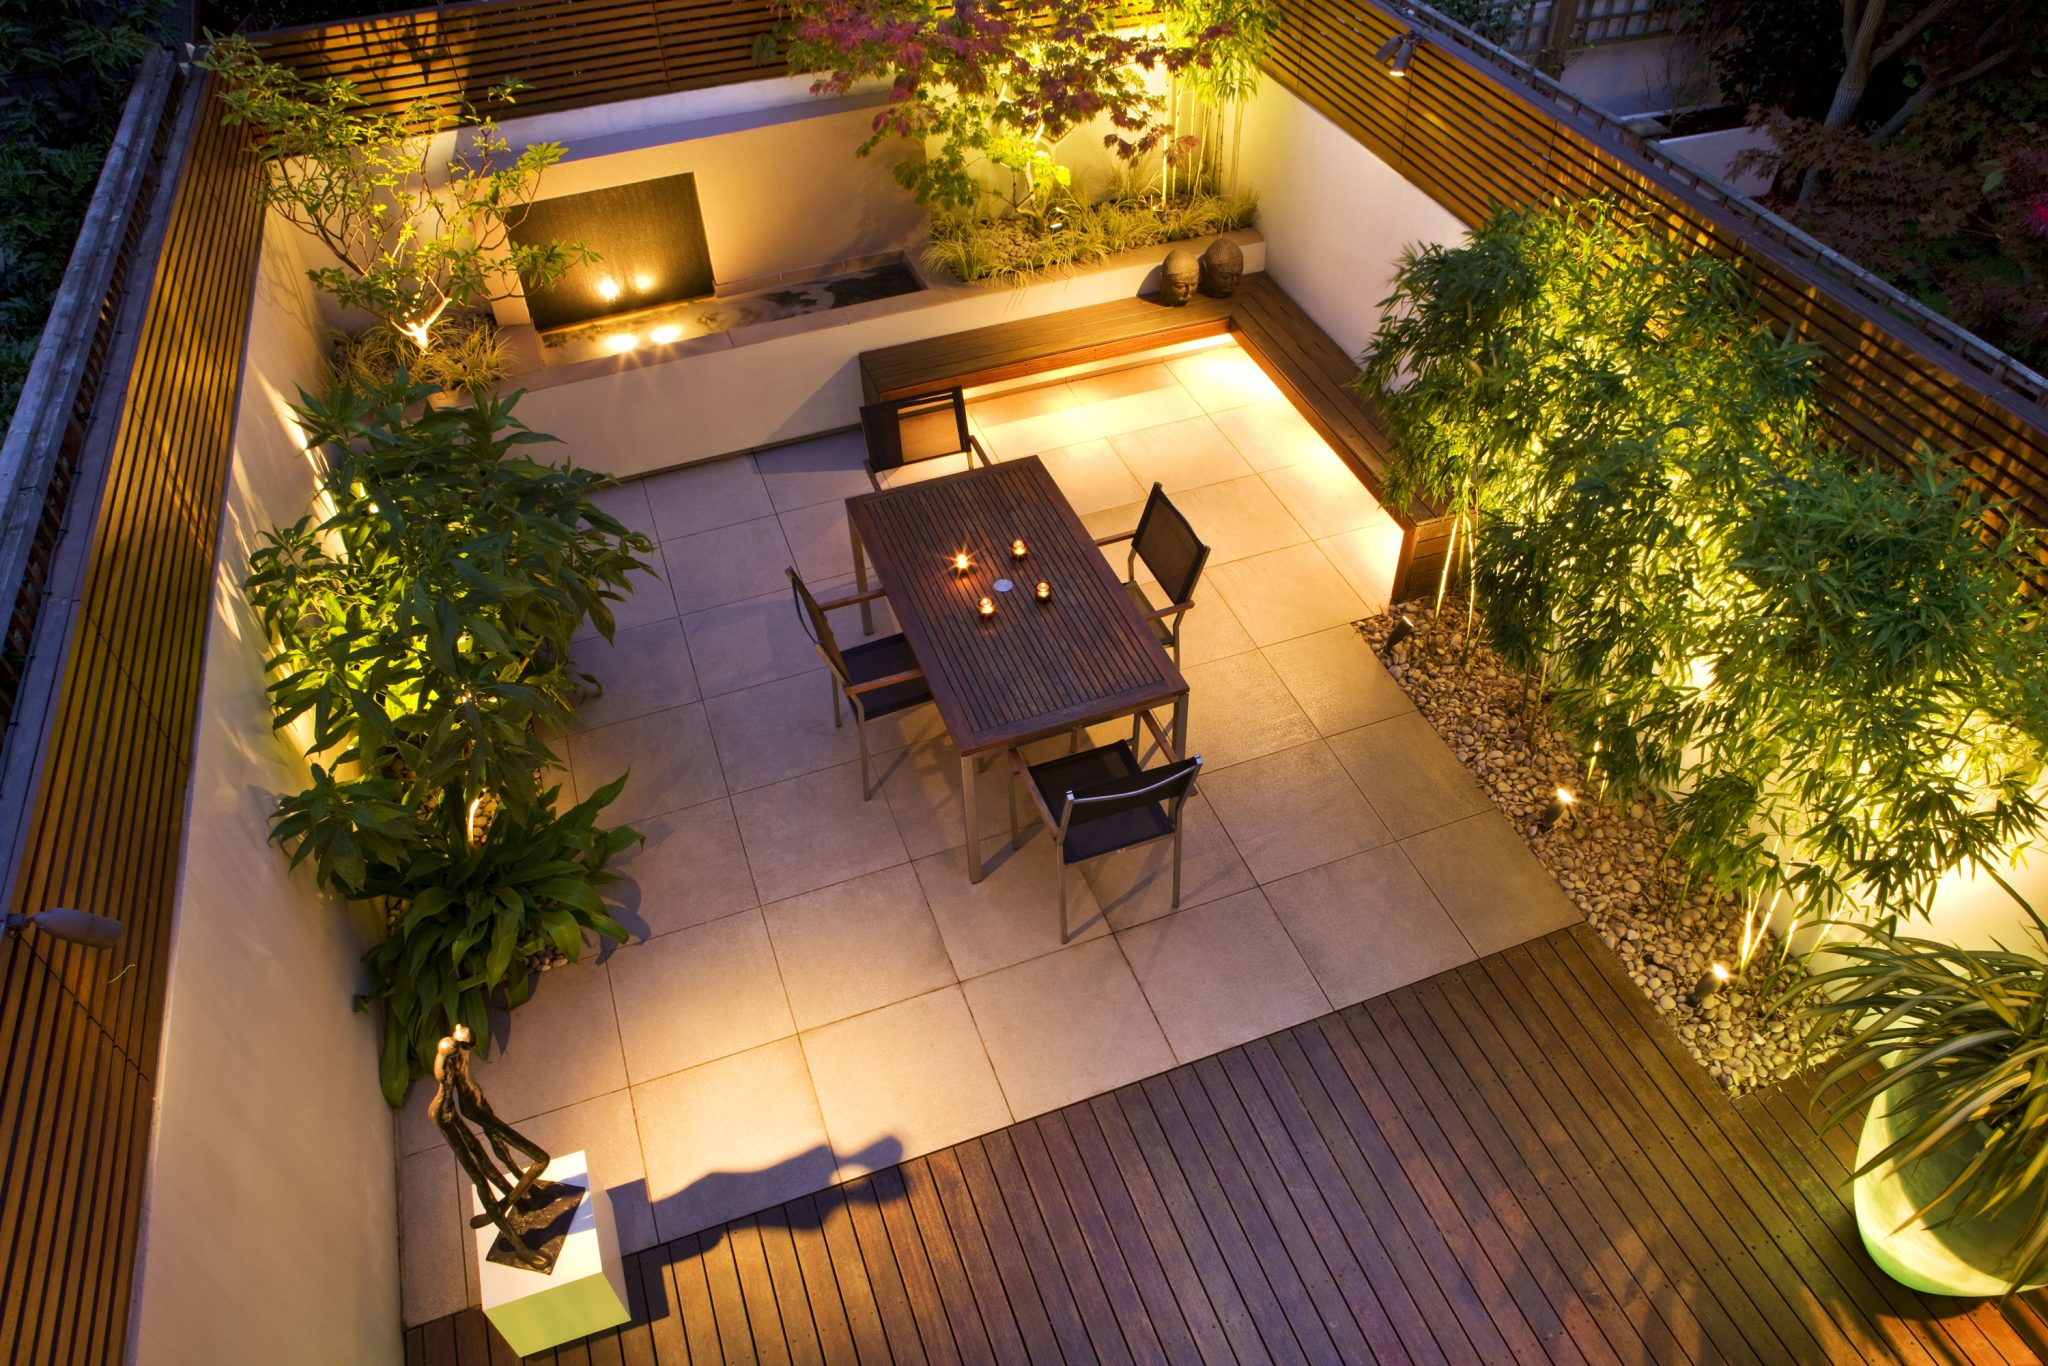 Bespoke garden lighting garden lighting london for Garden lighting designs